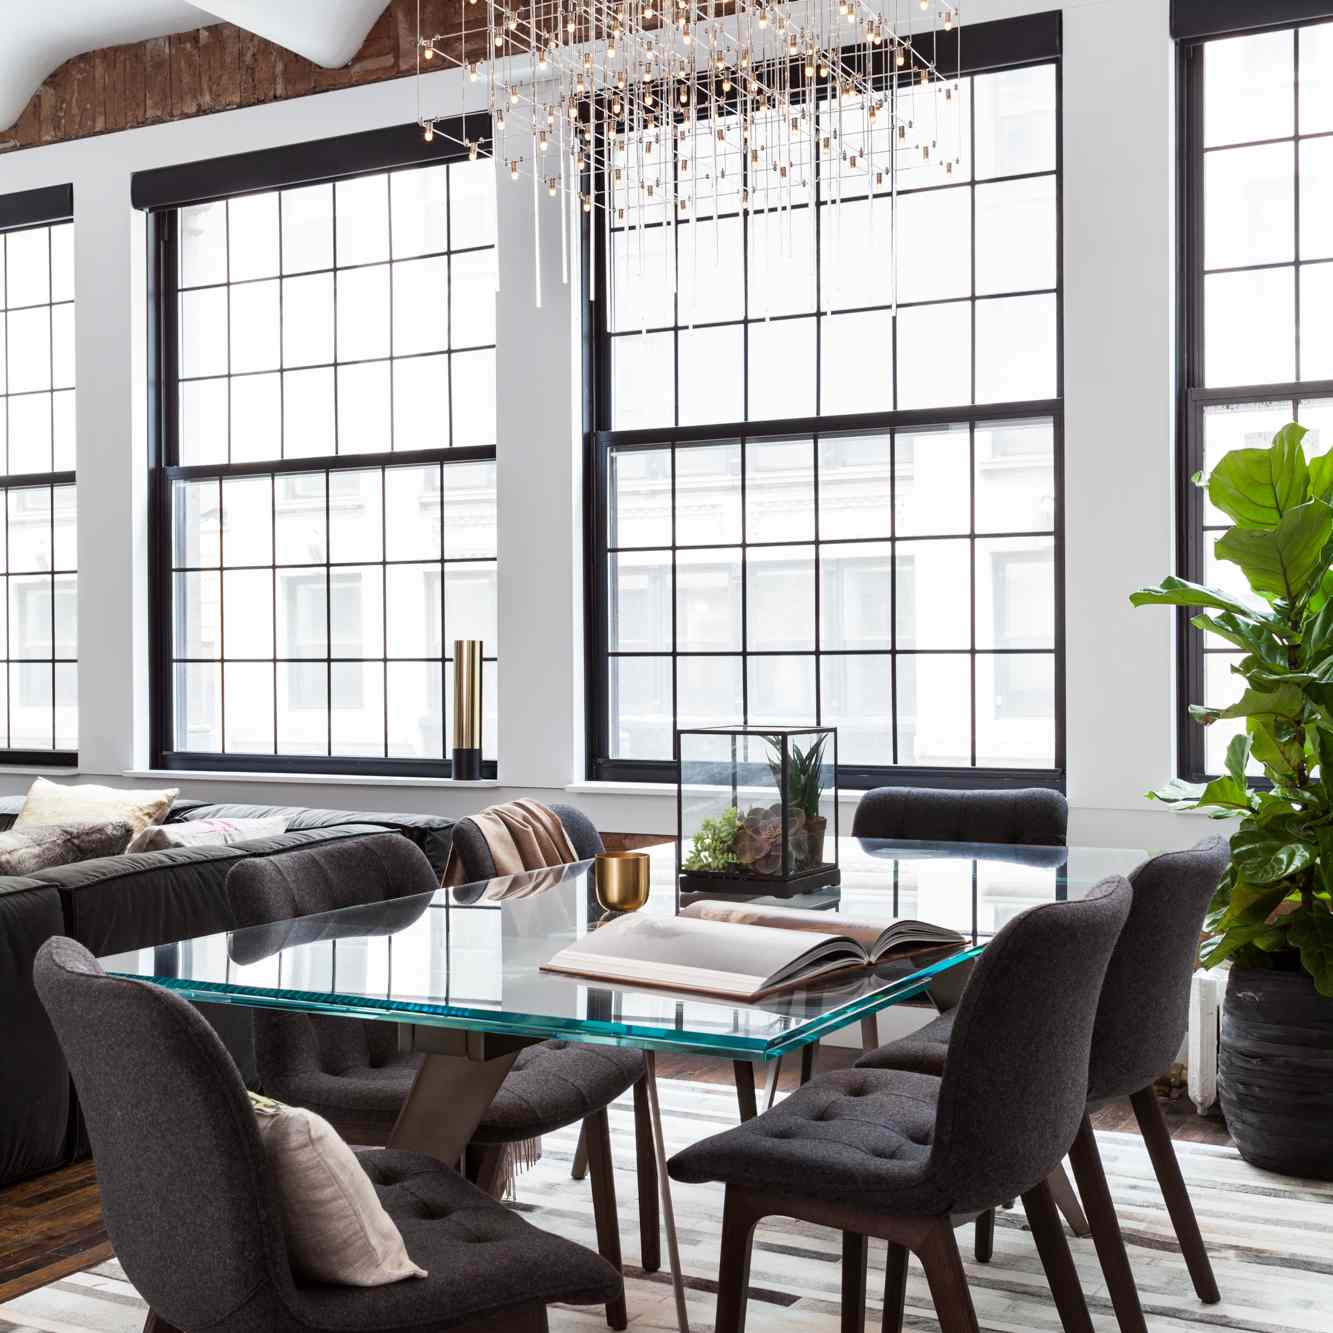 the dining area in this home features white walls and huge windows